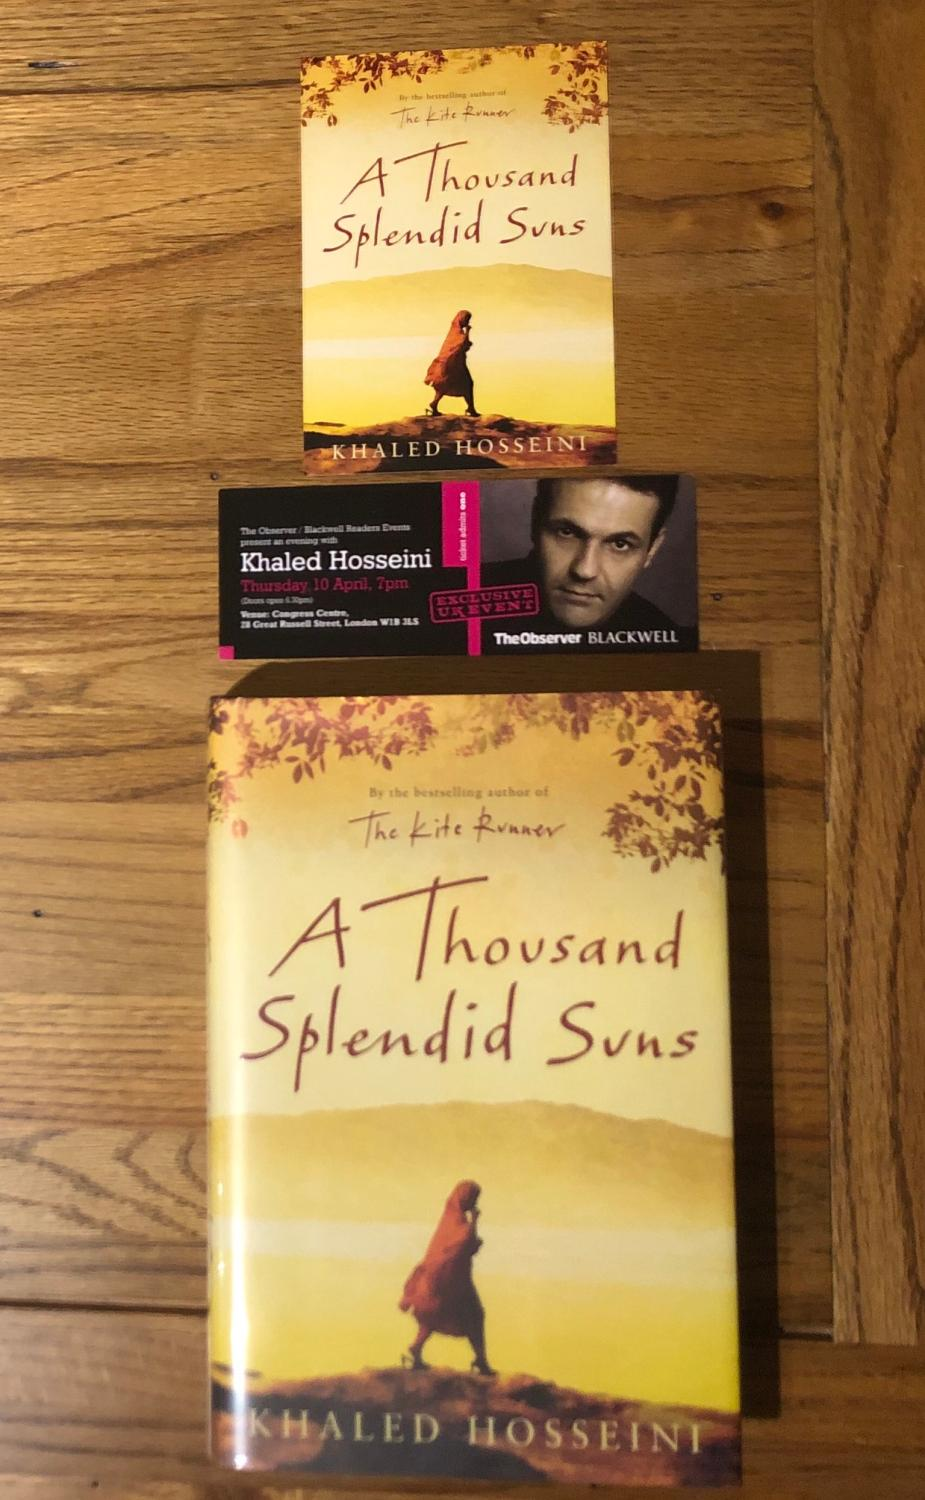 A Thousand Splendid Suns Hosseini, Khaled [ ] [Hardcover] First UK Edition. Publisher's maroon boards with gilt lettering on the spine. A VERY FINE DOUBLE-SIGNED FIRST UK FIRST EDITION WITH THE AUTHOR'S UNHCR FLYER AND SEPARATE SIGNING EVENT PHOTOGRAPH LAID IN. A very fine copy in like D/W with the scarce, red, wrap-around band. Original price of £12.99 on the inside flap. Blue end-papers and red ribbon page-marker. Signed by the Author in both English and Farsi on the title page. Scarce with these attributes. Photographs/scans available upon request.